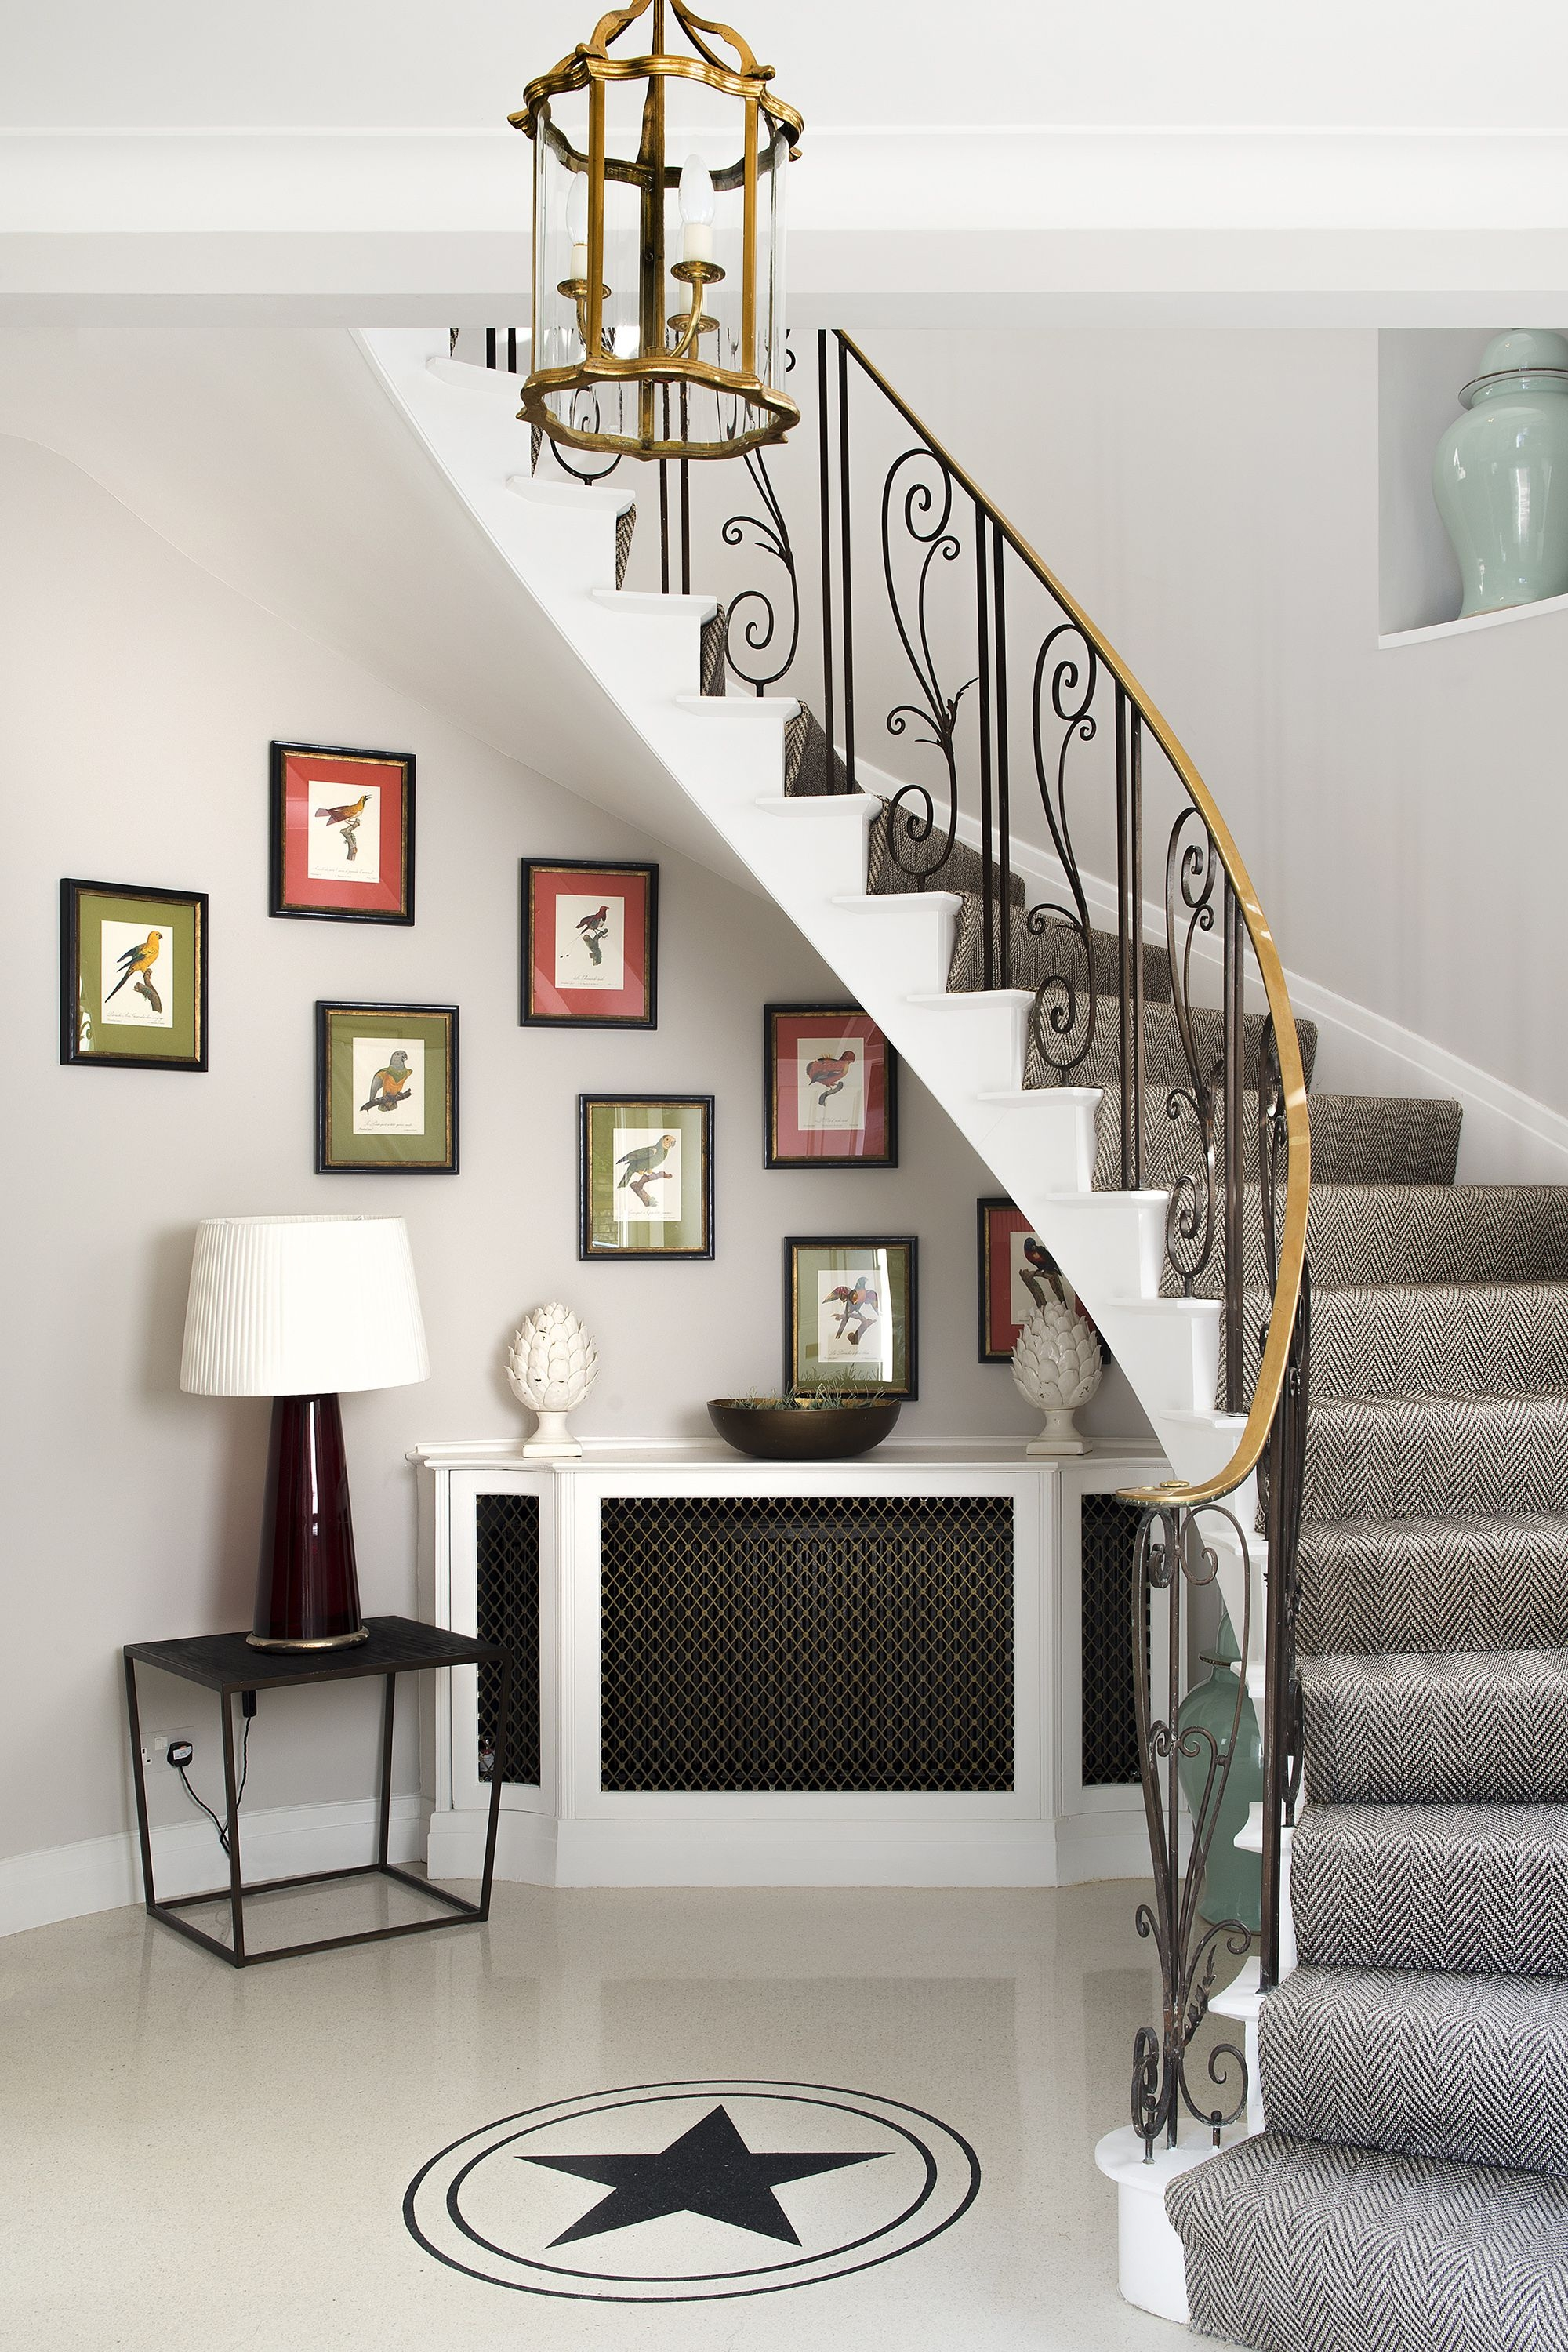 27 Stylish Staircase Decorating Ideas How To Decorate Stairways | Staircase In Hall Design | 2 Storey House | Low Budget | Step Side Wall | Steel Verandah | Mansion